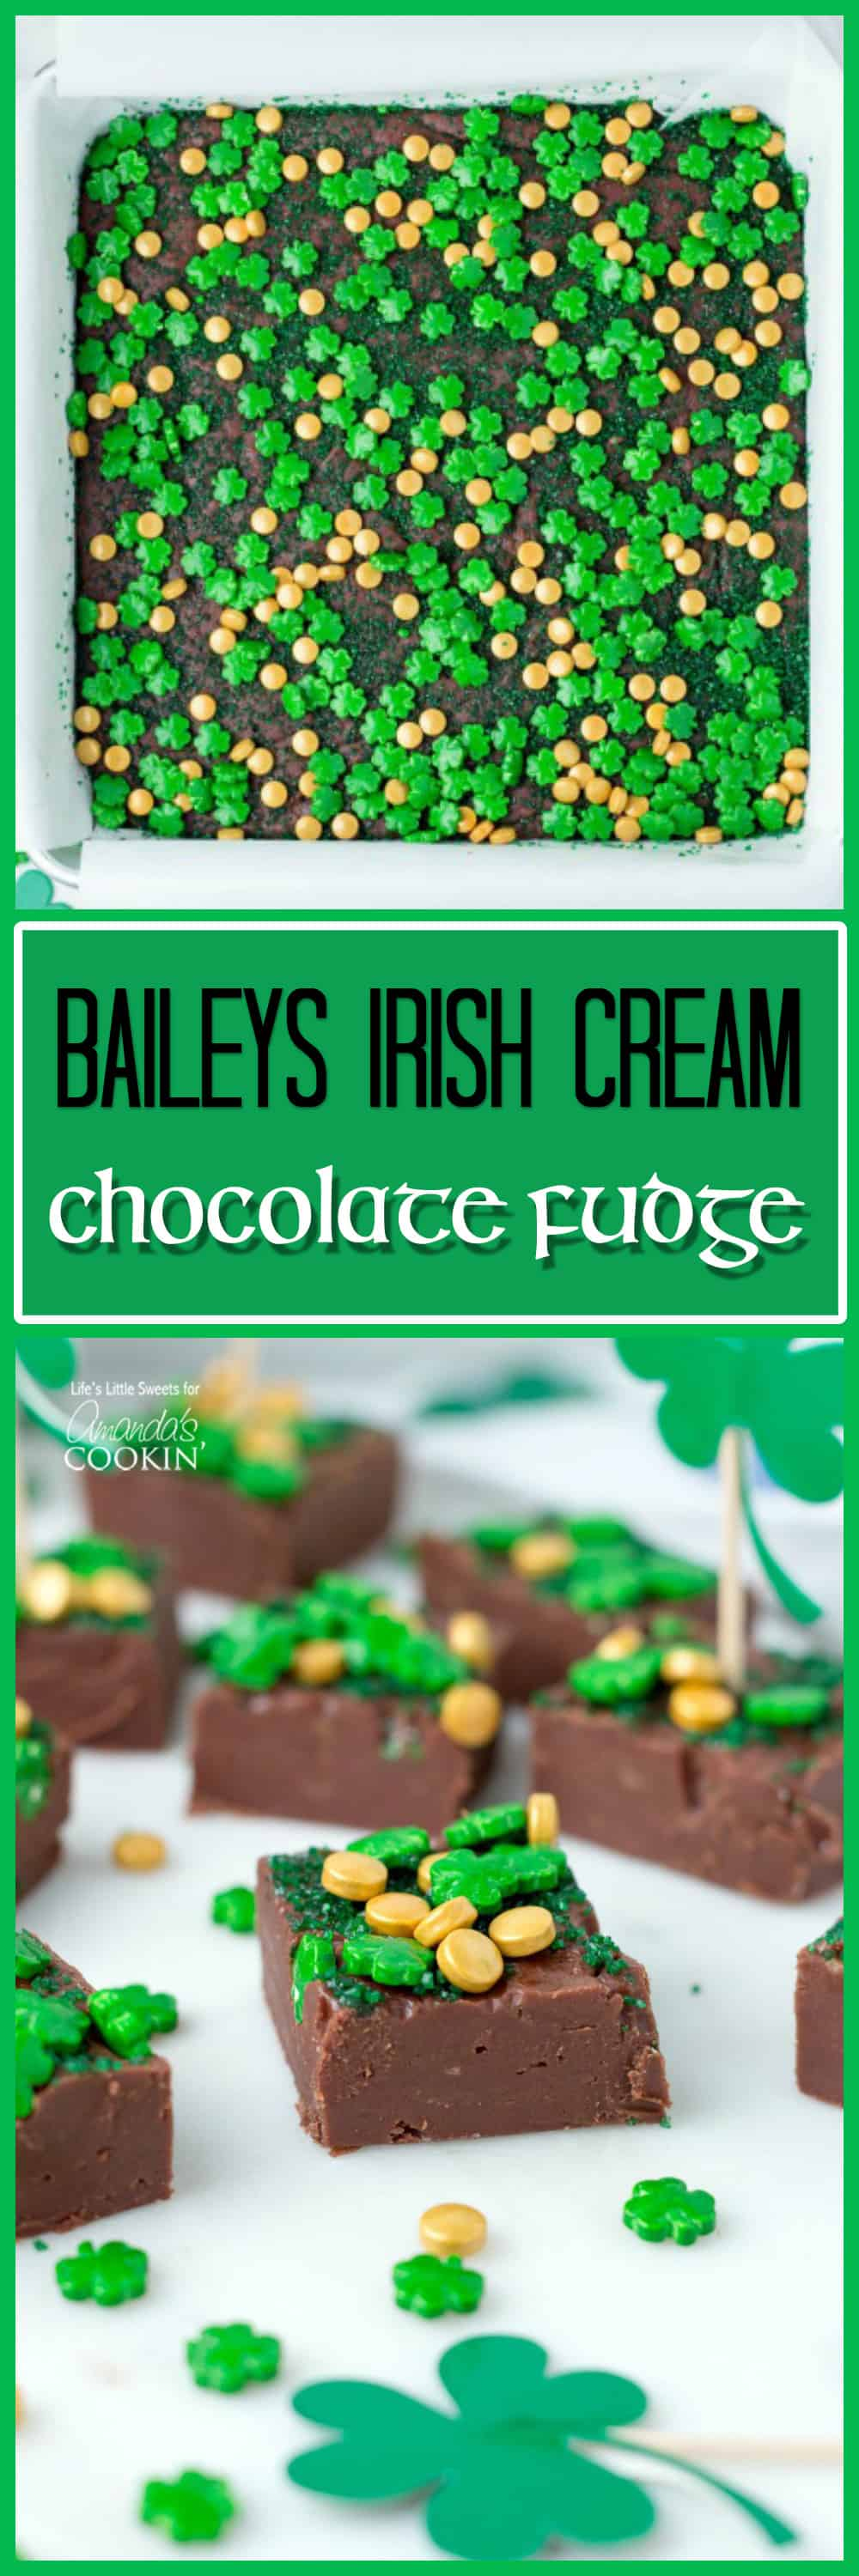 This Baileys Irish Cream Chocolate Fudge is a decadent, flavorful, and rich chocolate fudge recipe infused with Baileys Irish Cream. You'll love this one!